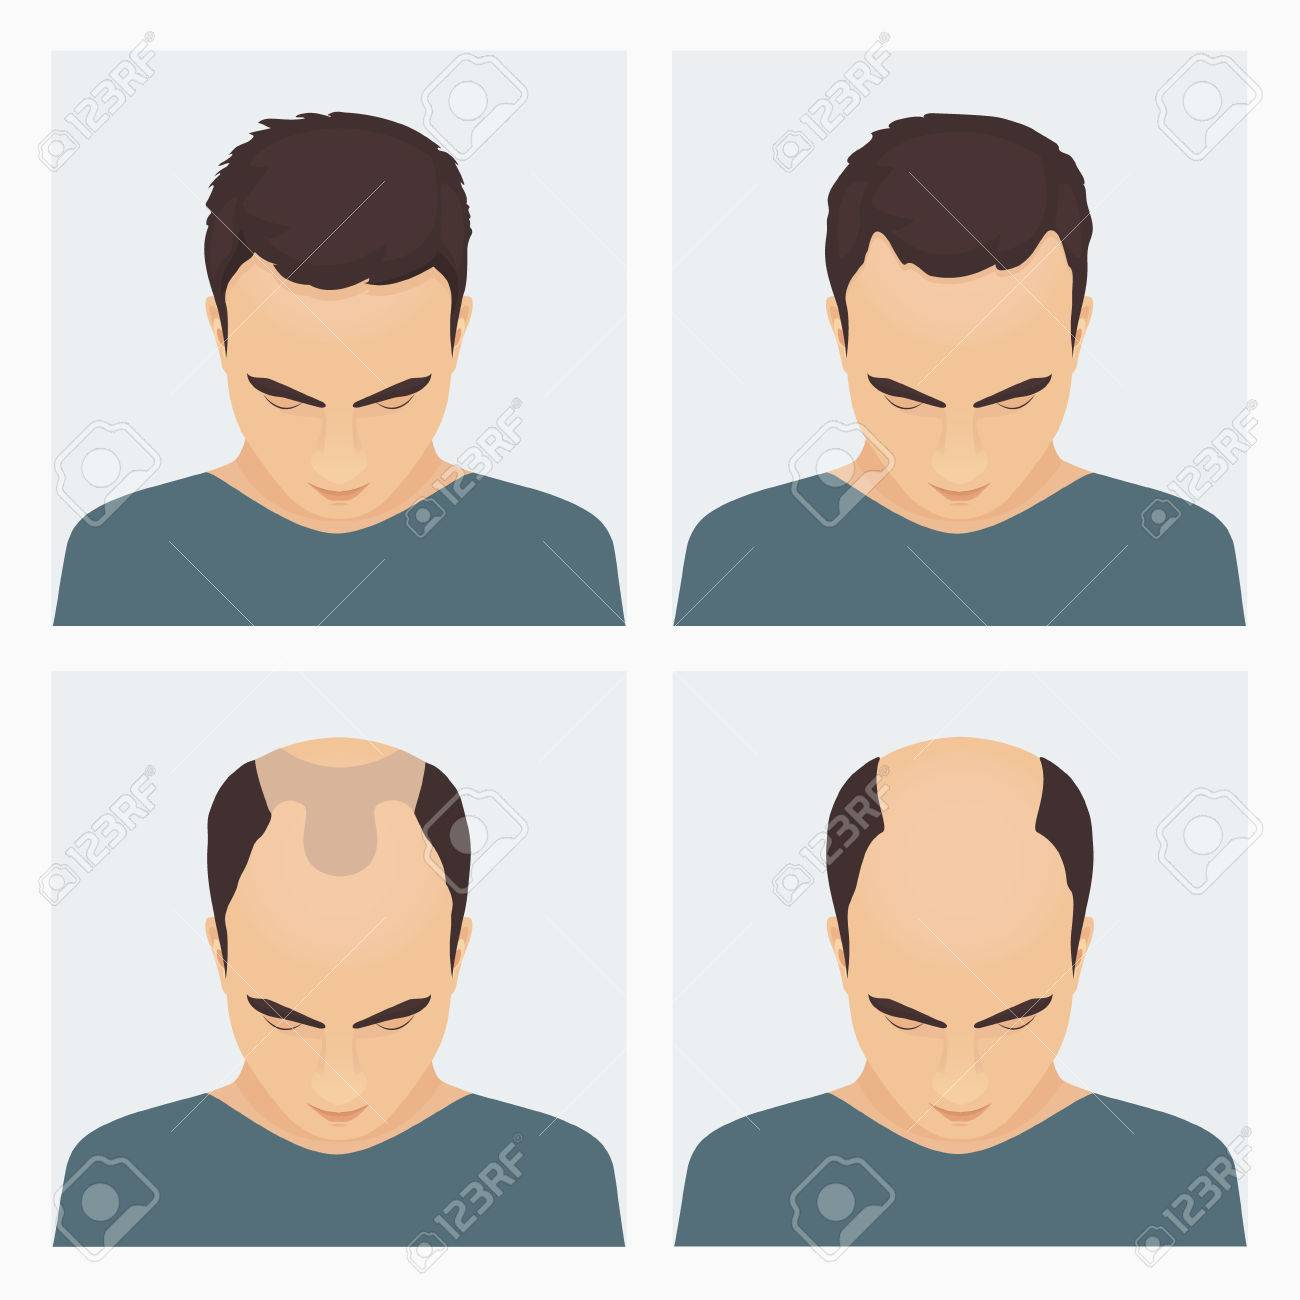 Image result for images of male pattern baldness